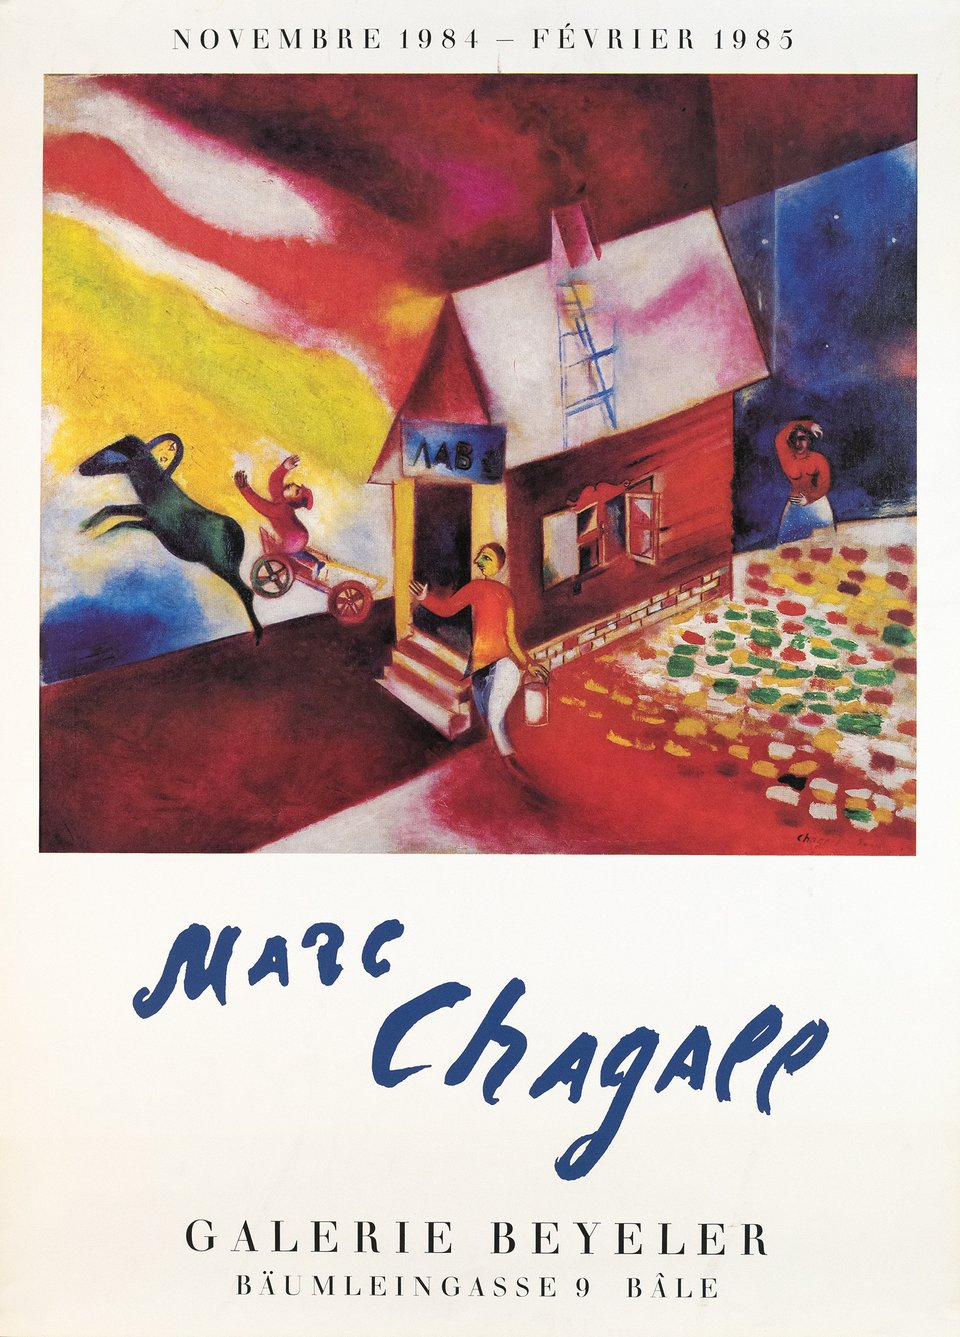 Marc Chagall, Galerie Beyeler – Affiche ancienne – Marc CHAGALL – 1984